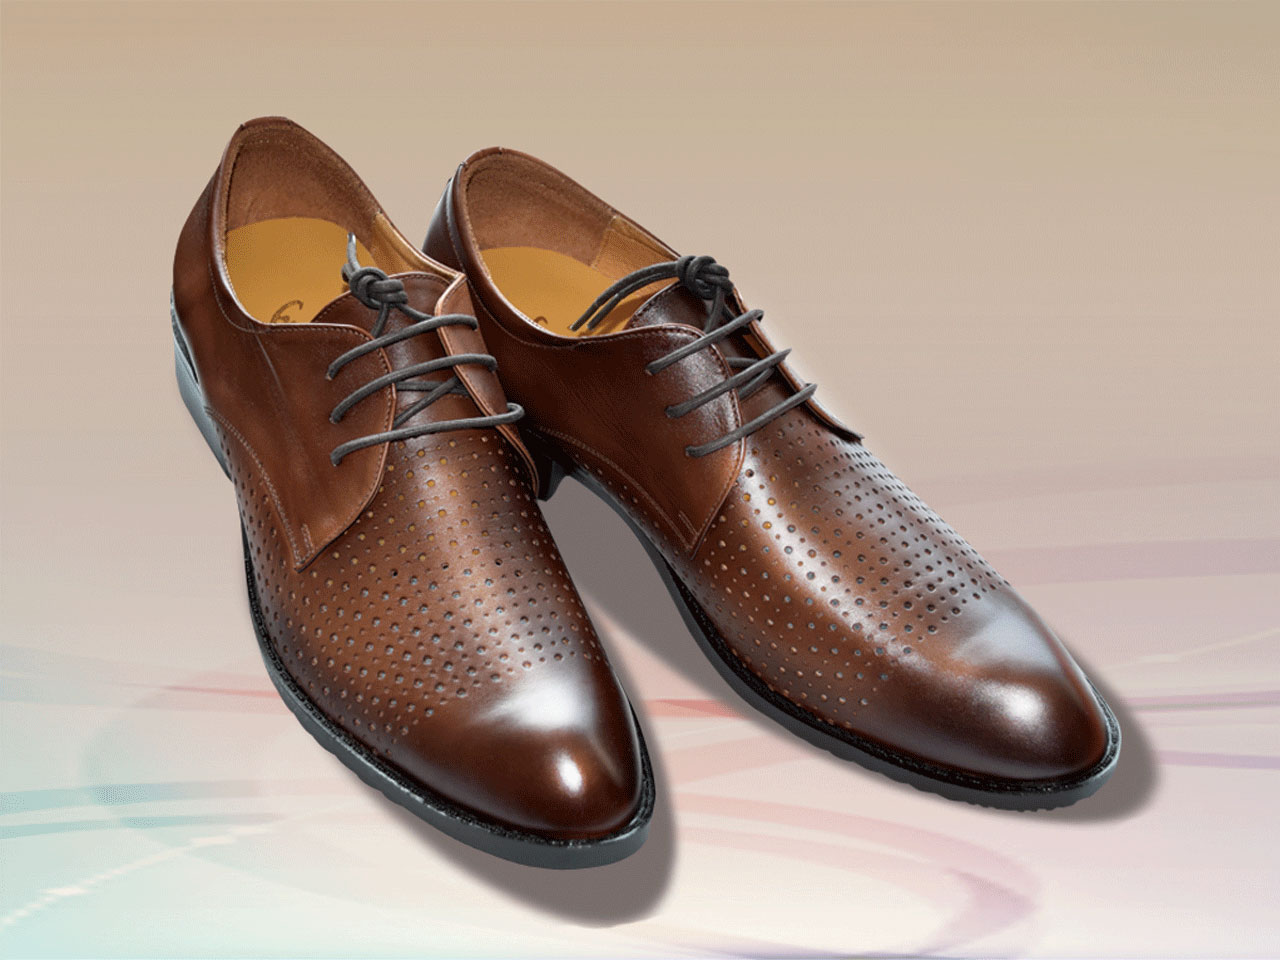 Summer leather shoes for men